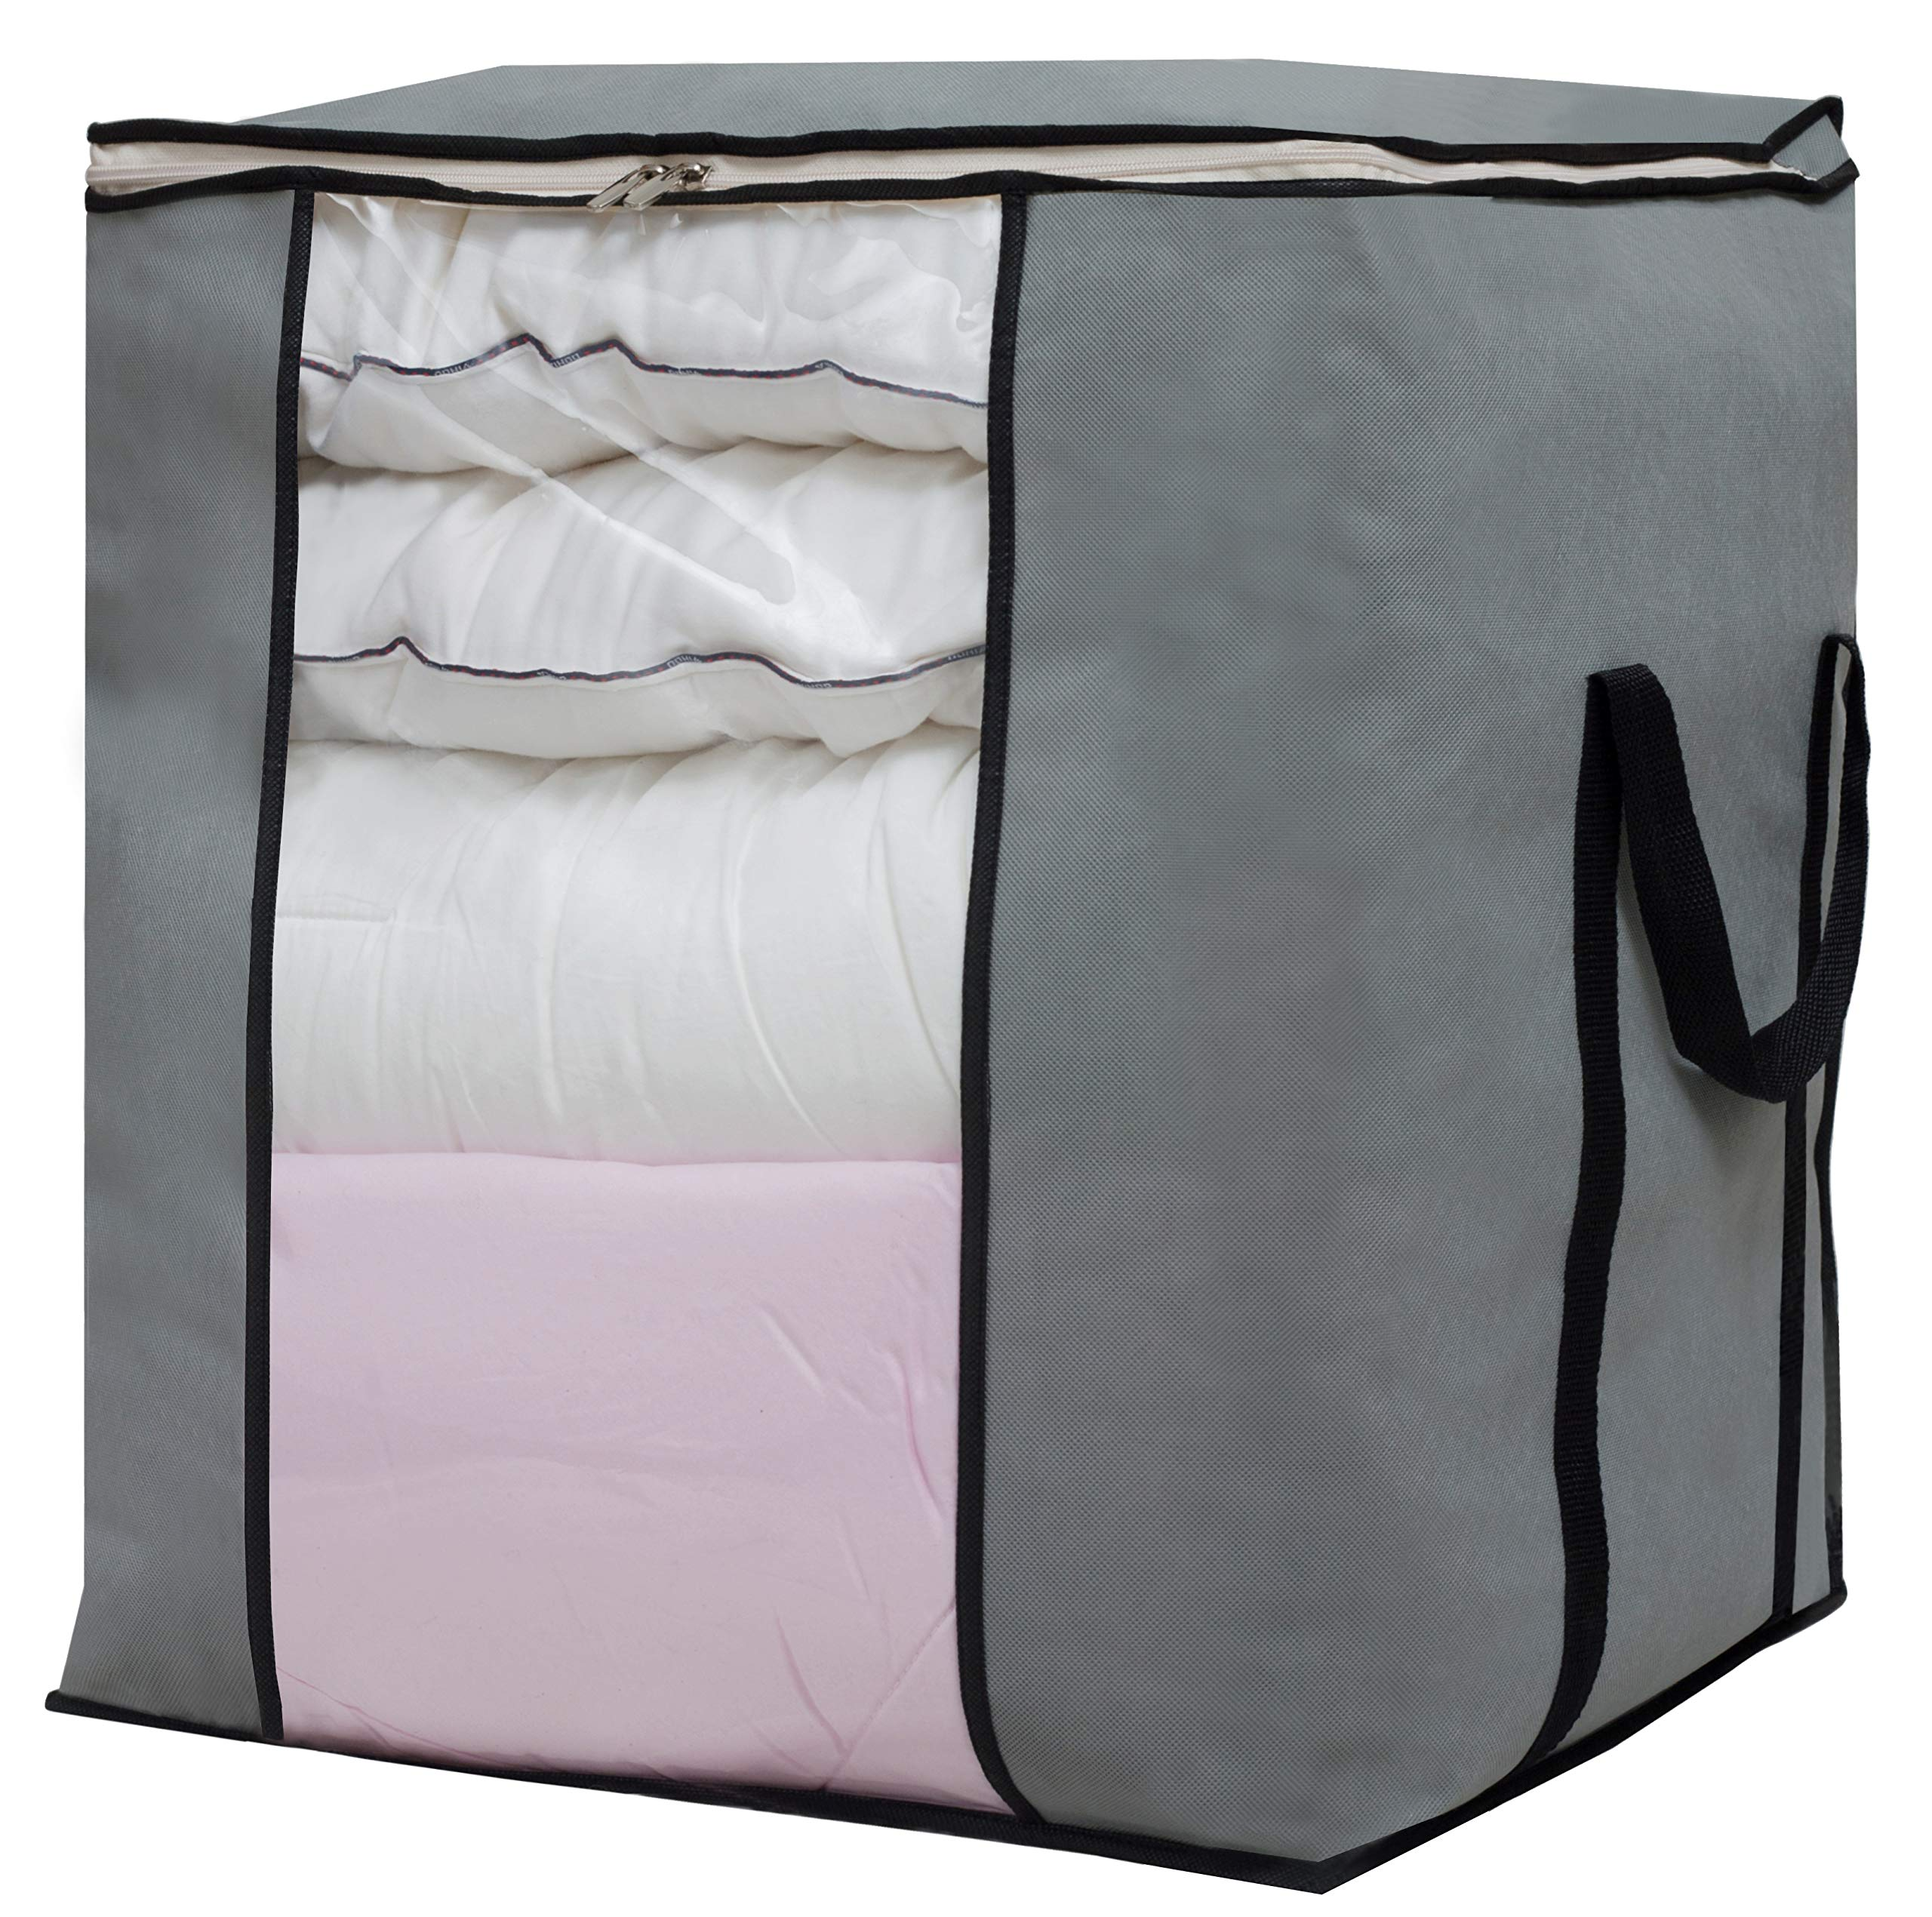 SLEEPING LAMB Large Foldable Storage Bag Organizer Moisture Proof Clothes Storage Container for Blanket Comforter Clothing Bedding with Durable Handles, Grey